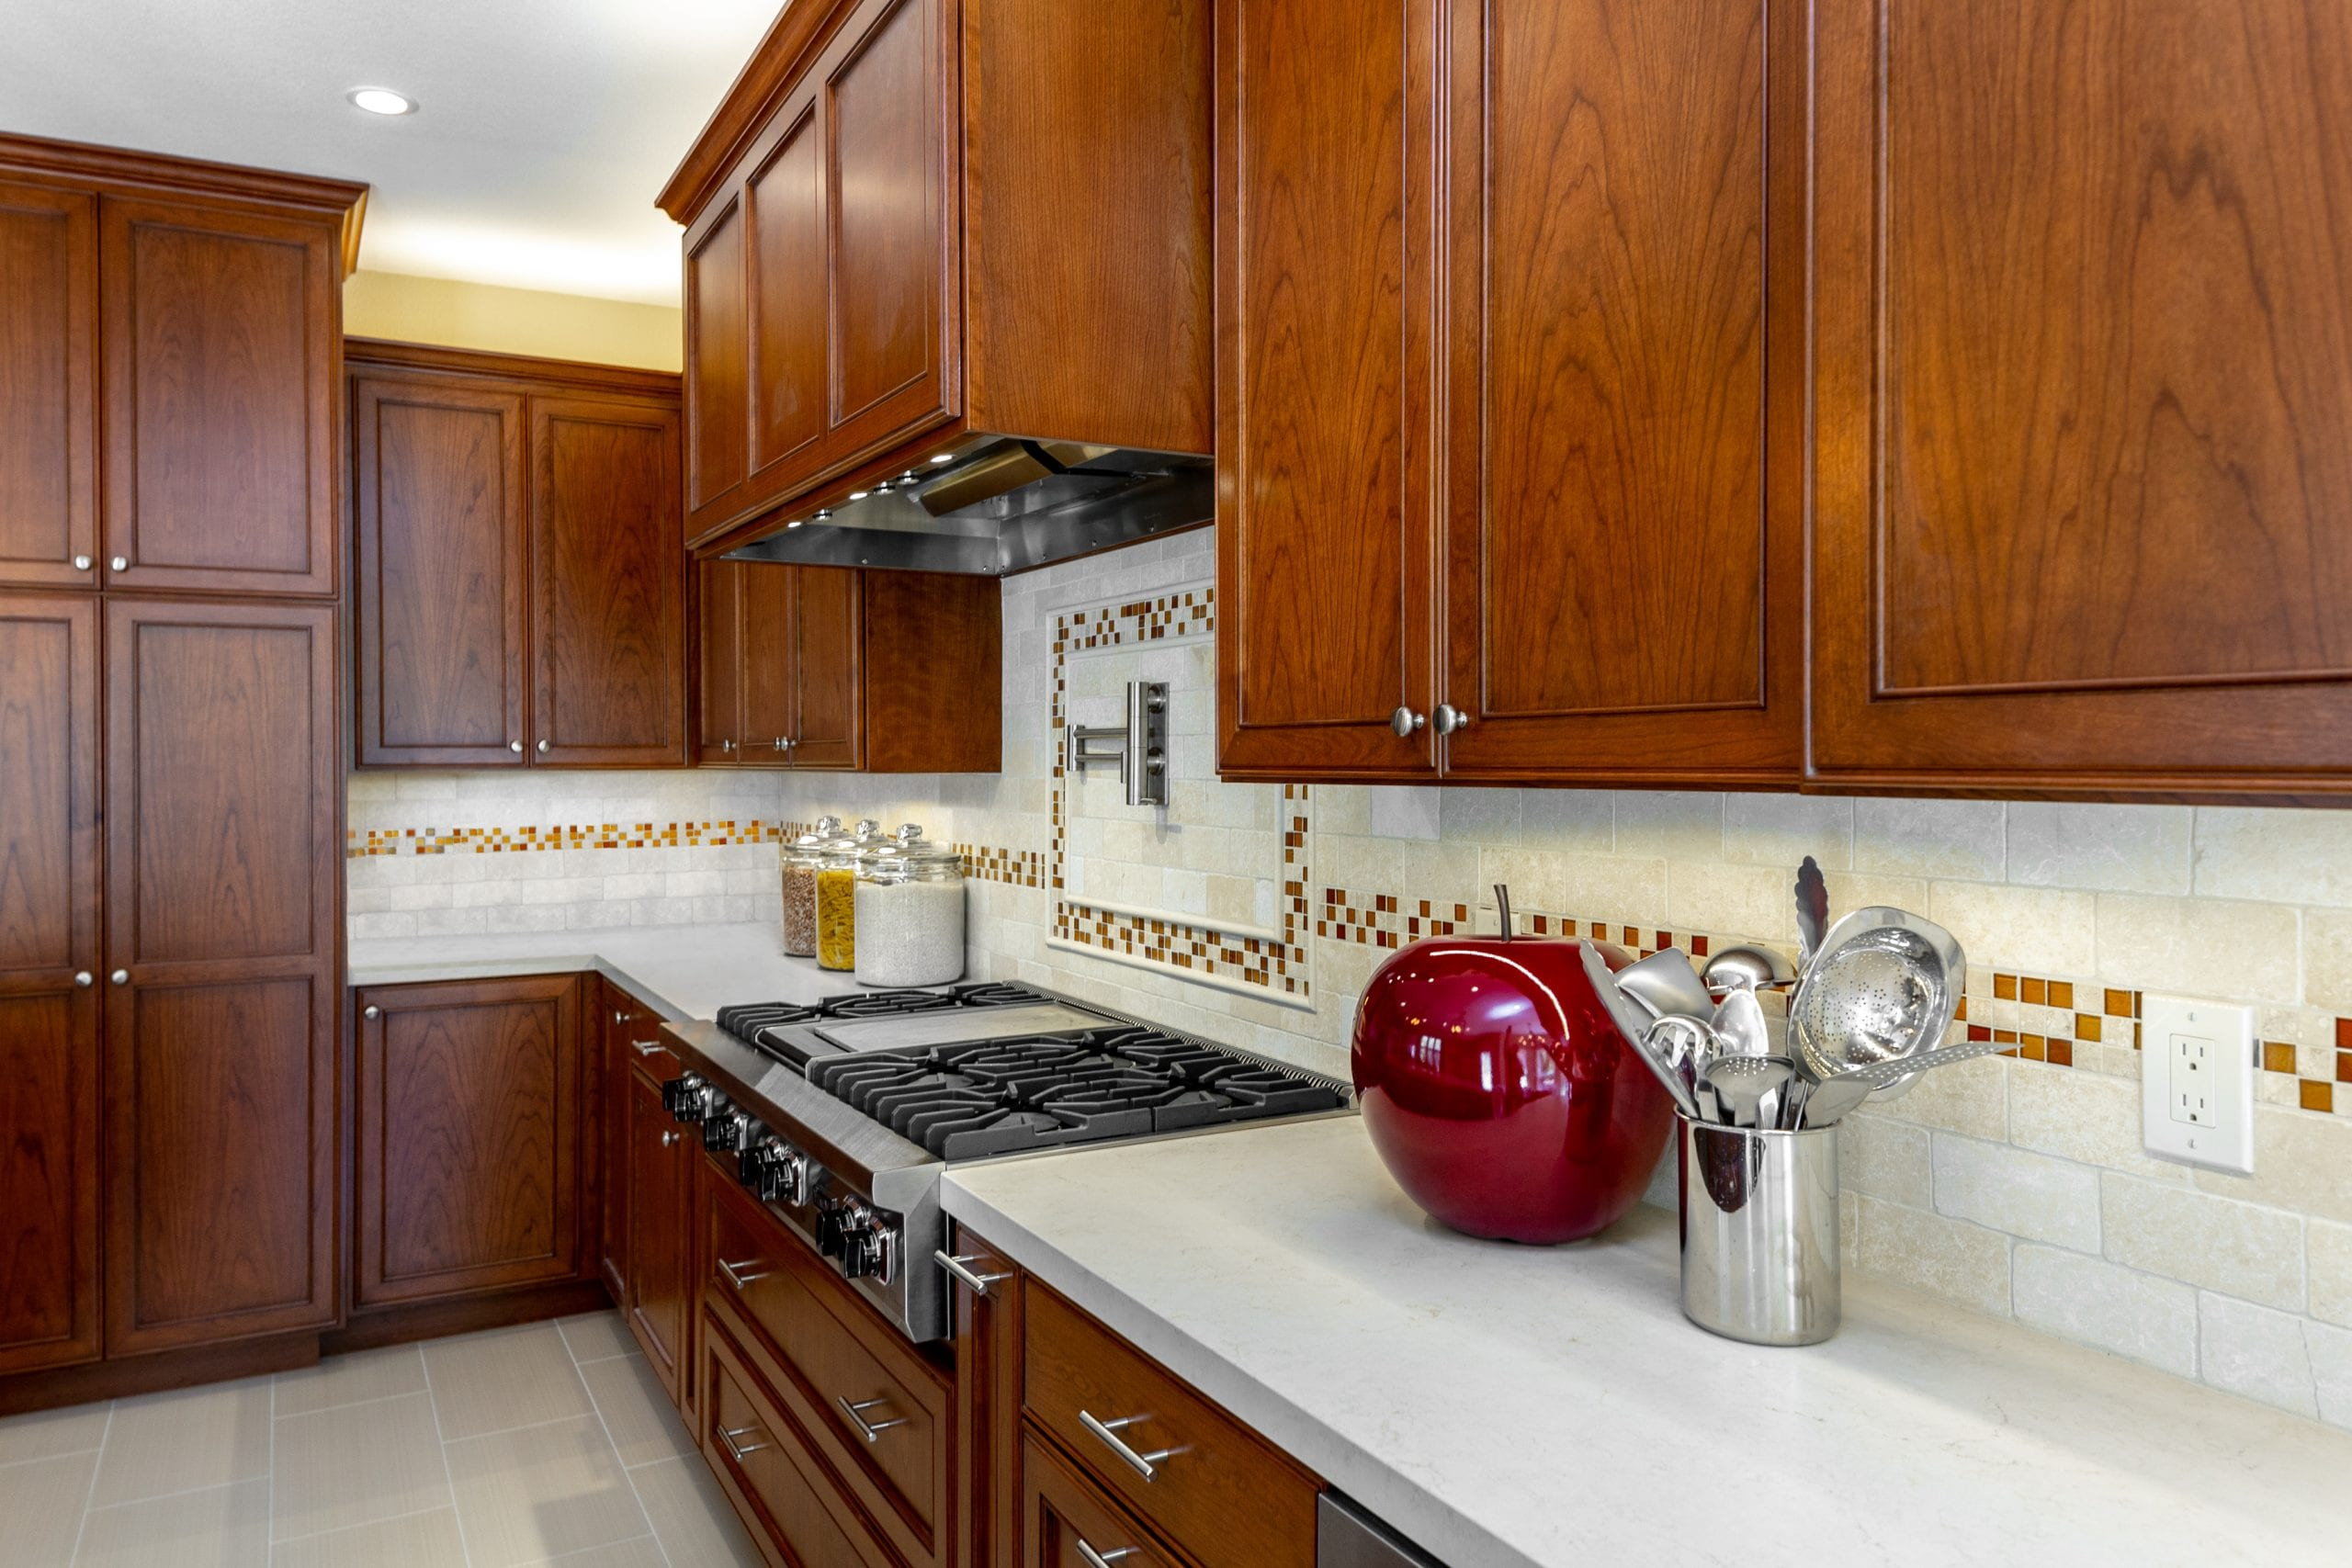 Stovetop with wood and bronze exhaust hood above